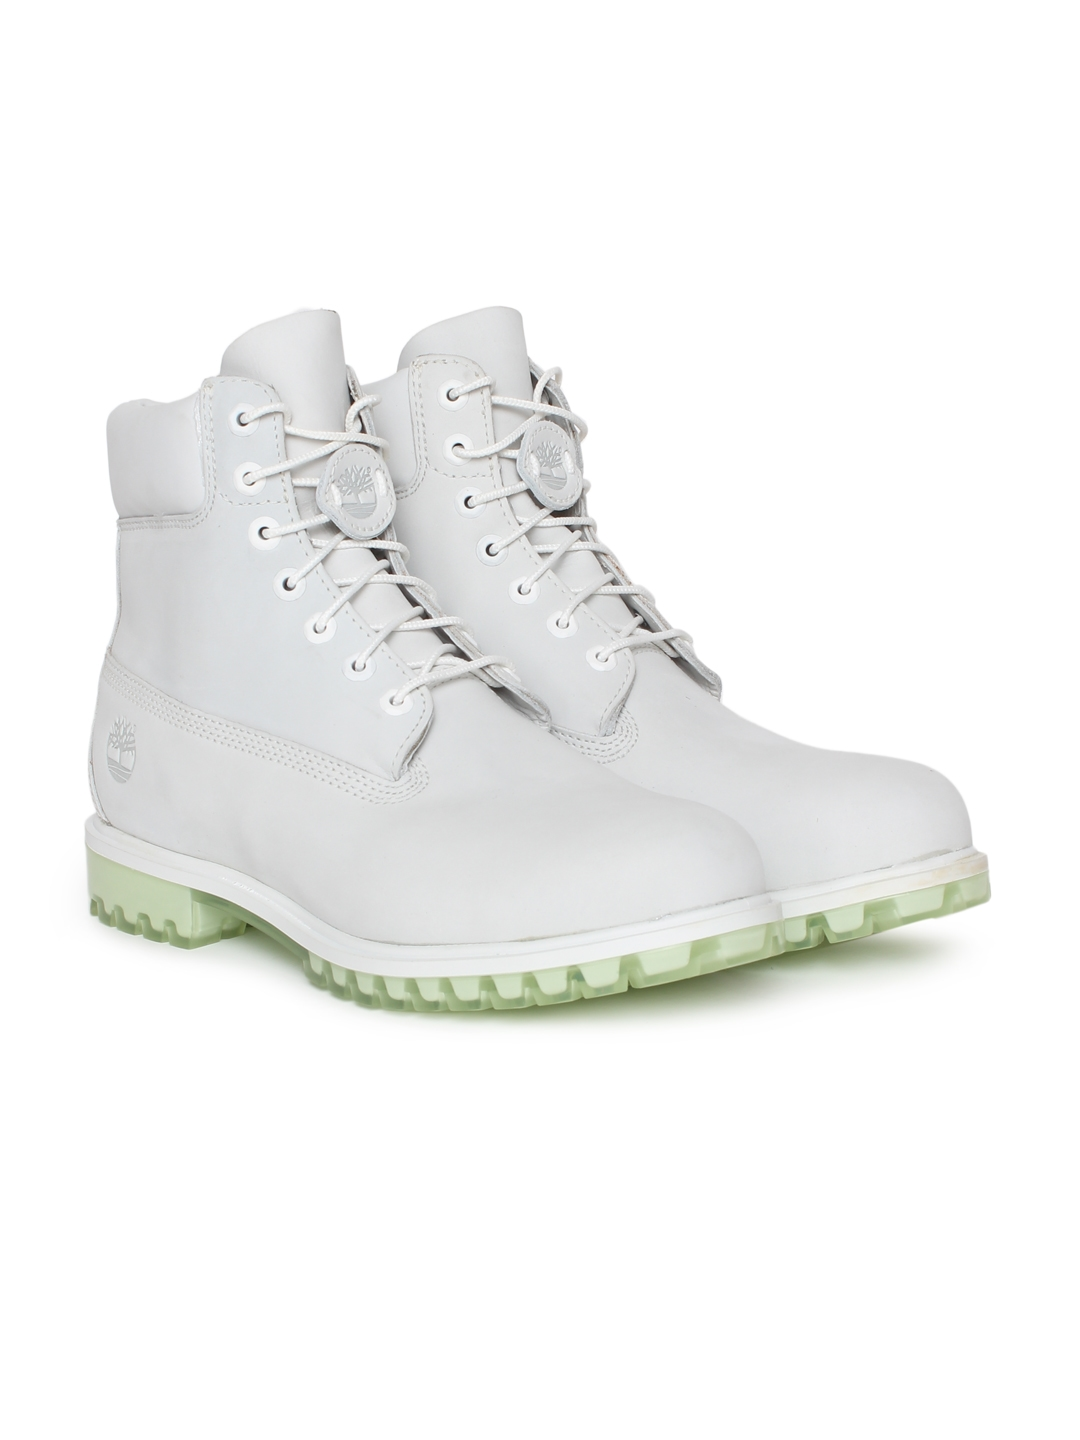 81a73ee75 Buy Timberland Men White Solid Leather High Top Flat Boots - Casual ...